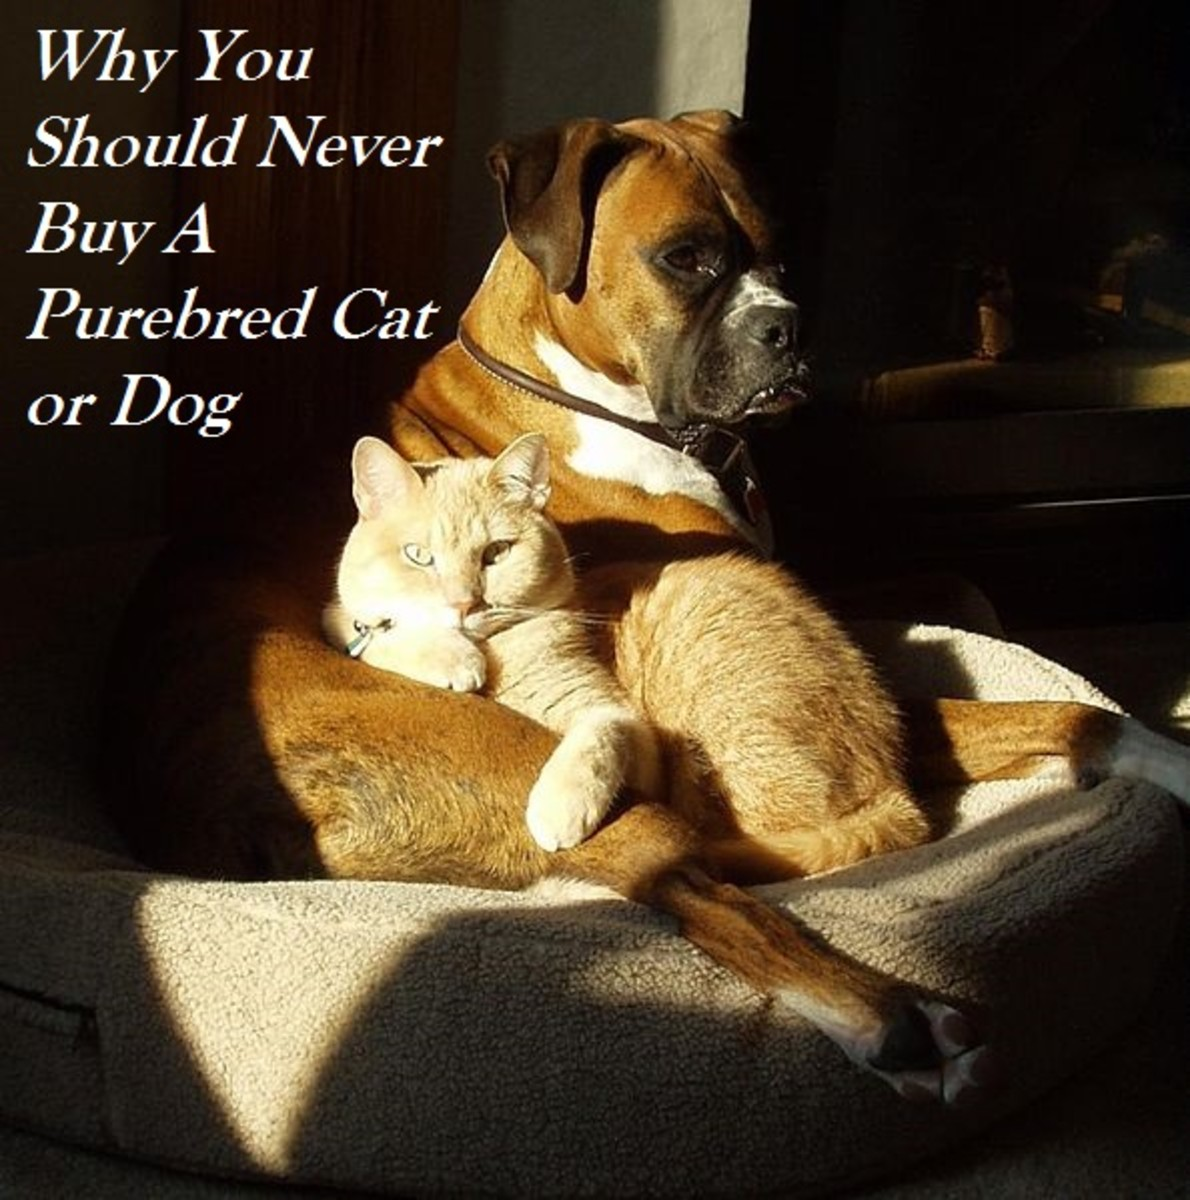 Buying a purebred cat or dogs sentences one of our millions of homeless pets to death.